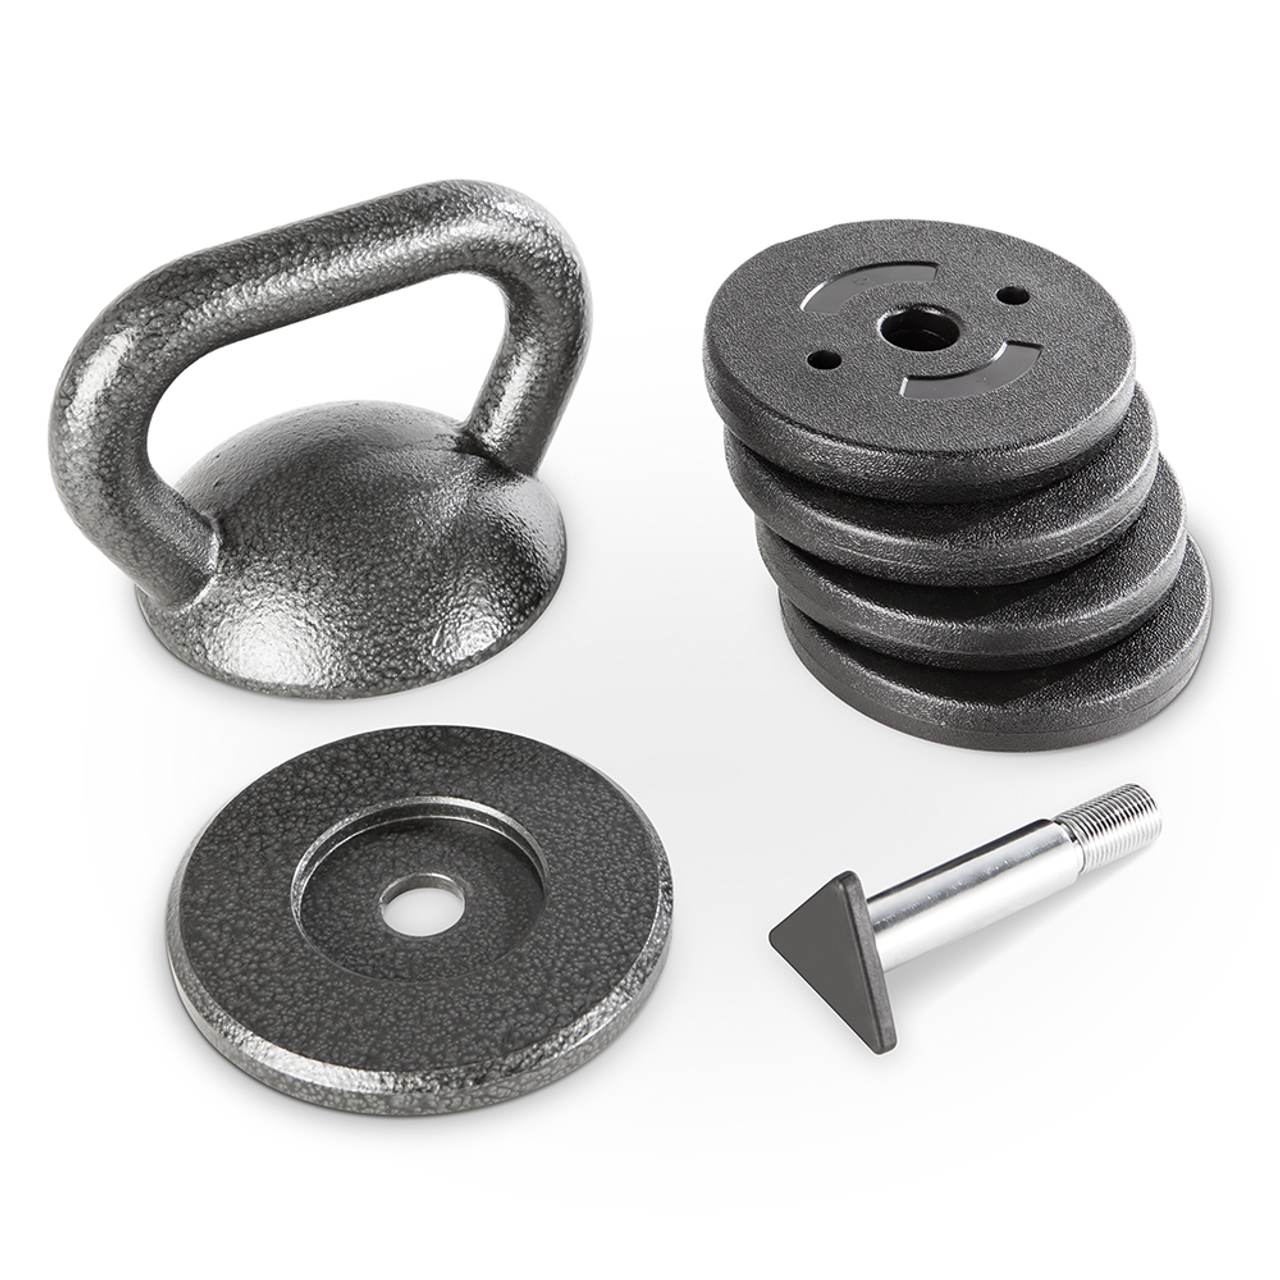 One Kettlebell for multiple workouts - with optimal grip this multi-function weight will deliver a wide variety of workouts at home